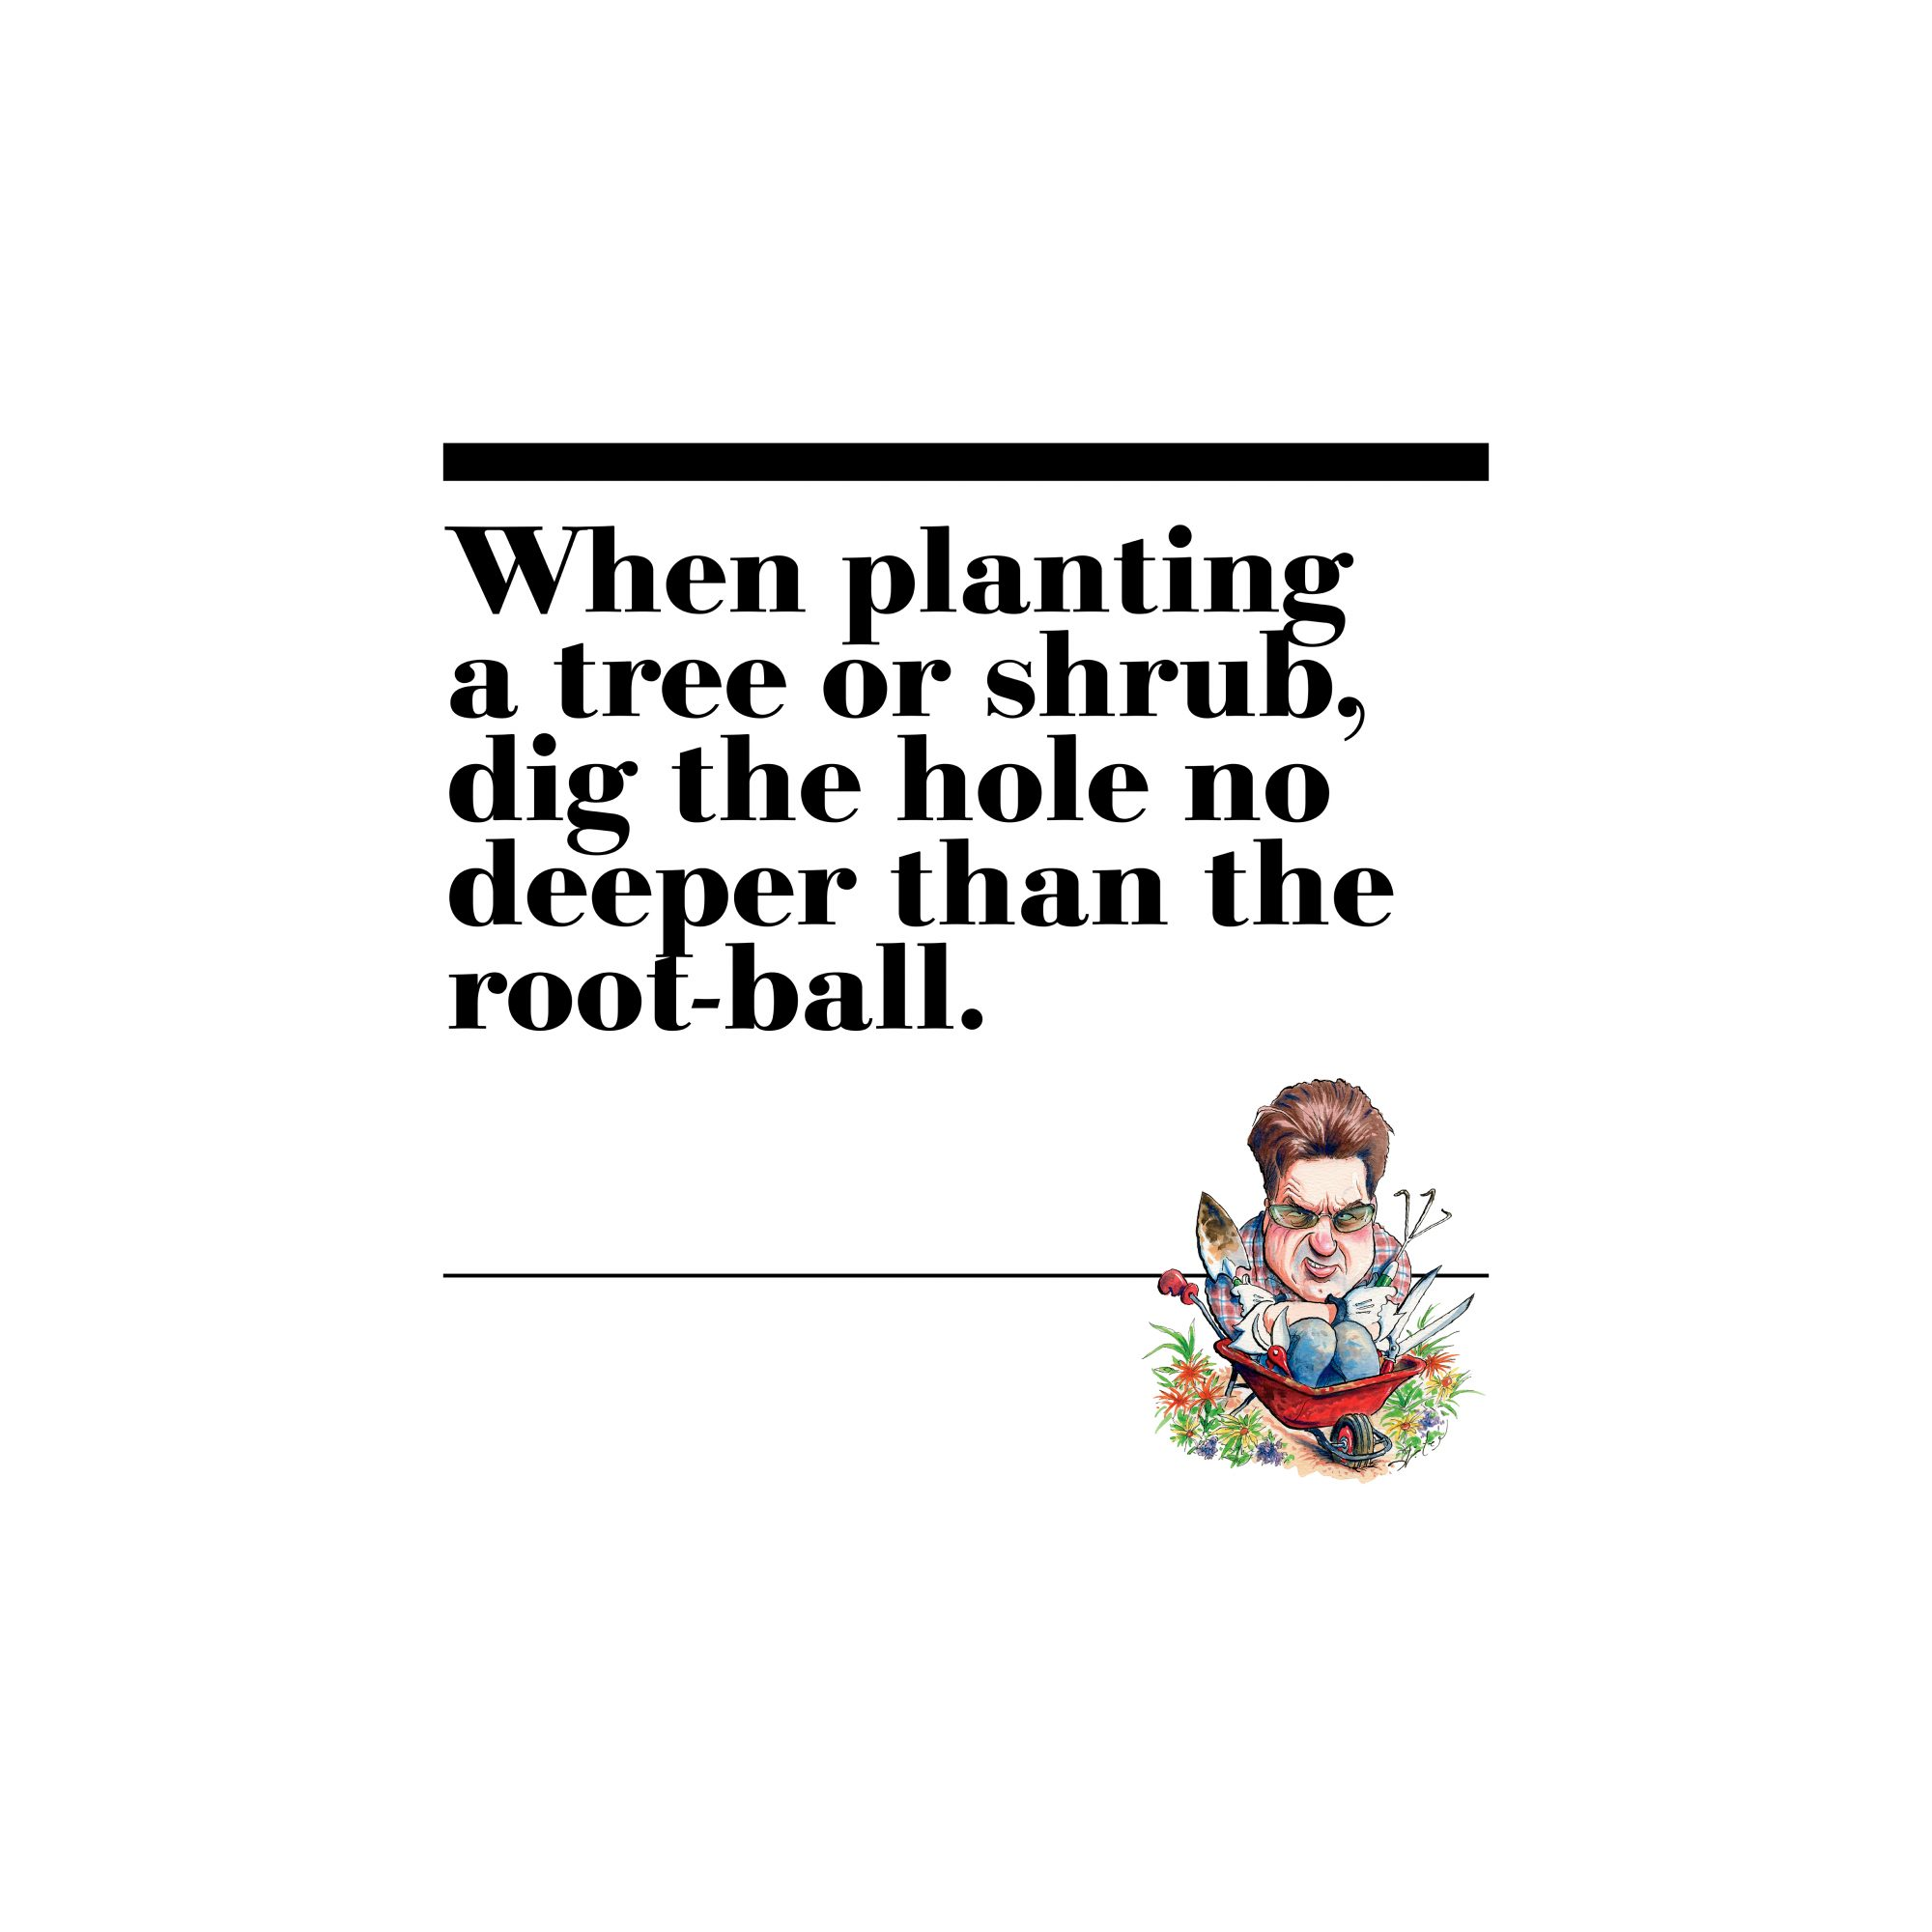 45. When planting a tree or shrub, dig the hole no deeper than the root-ball.